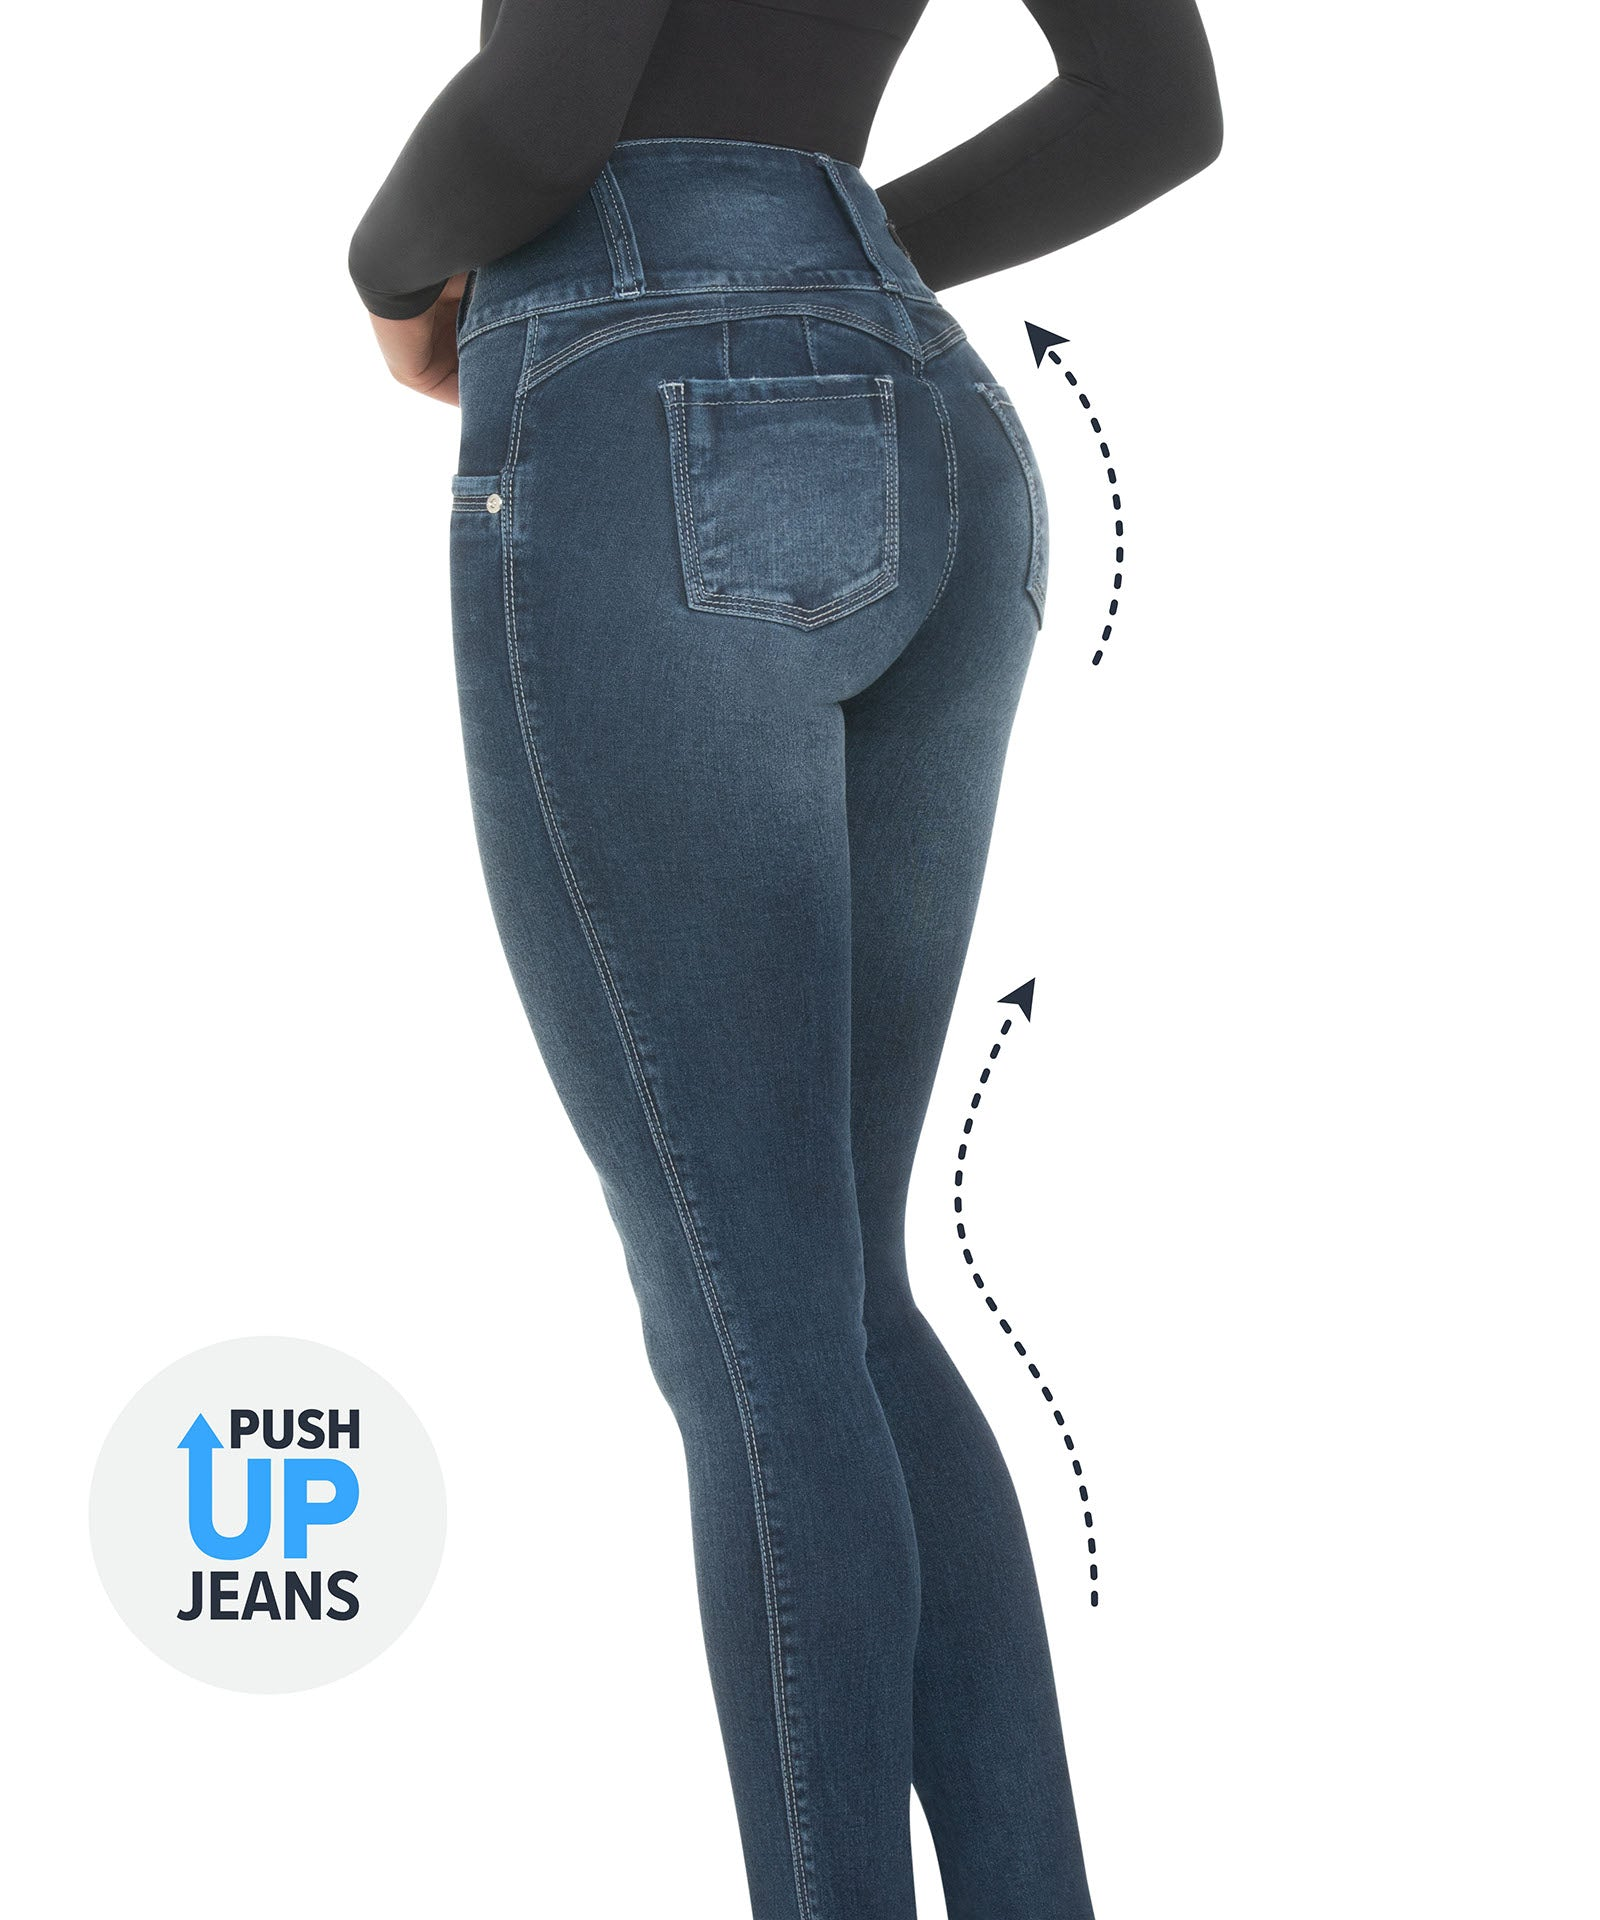 2035 - Push Up Jean by CYSM